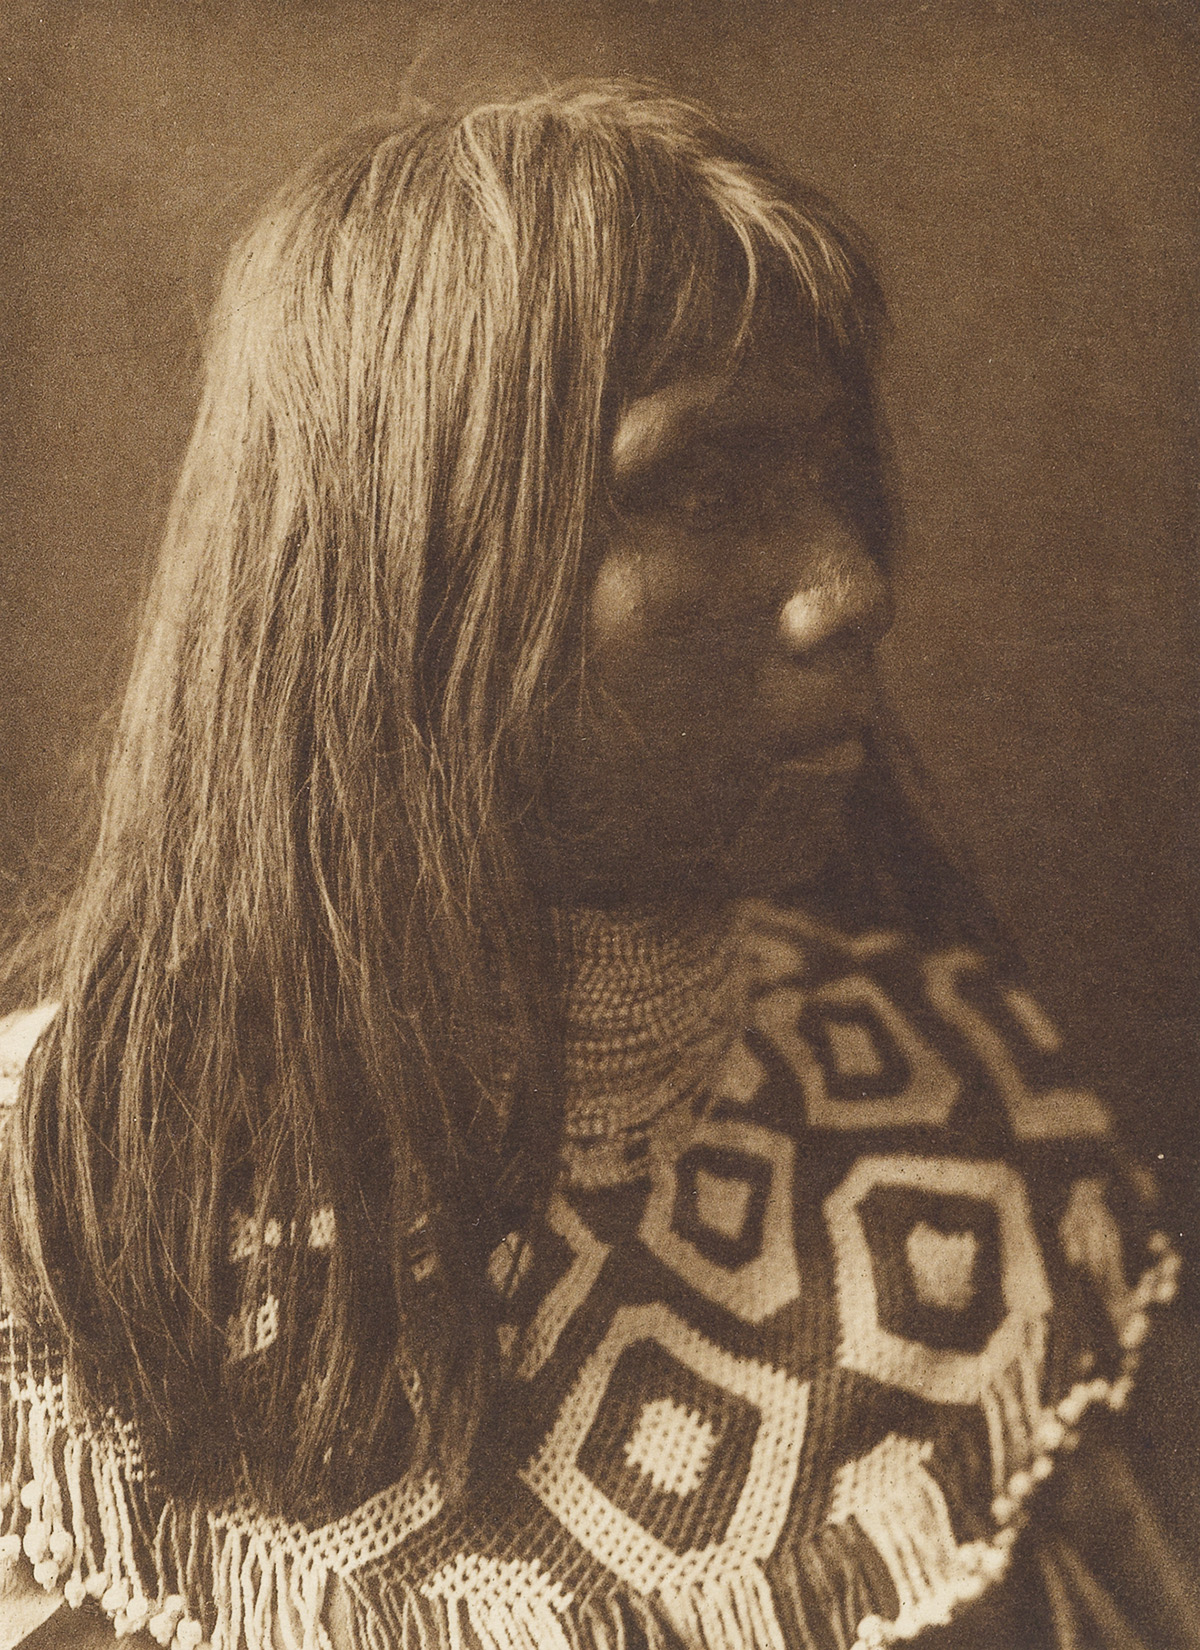 EDWARD-S-CURTIS-(1868-1952)-The-North-American-Indian-Being-a-Series-of-Volumes-Picturing-and-Describing-the-Indians-of-the-United-St